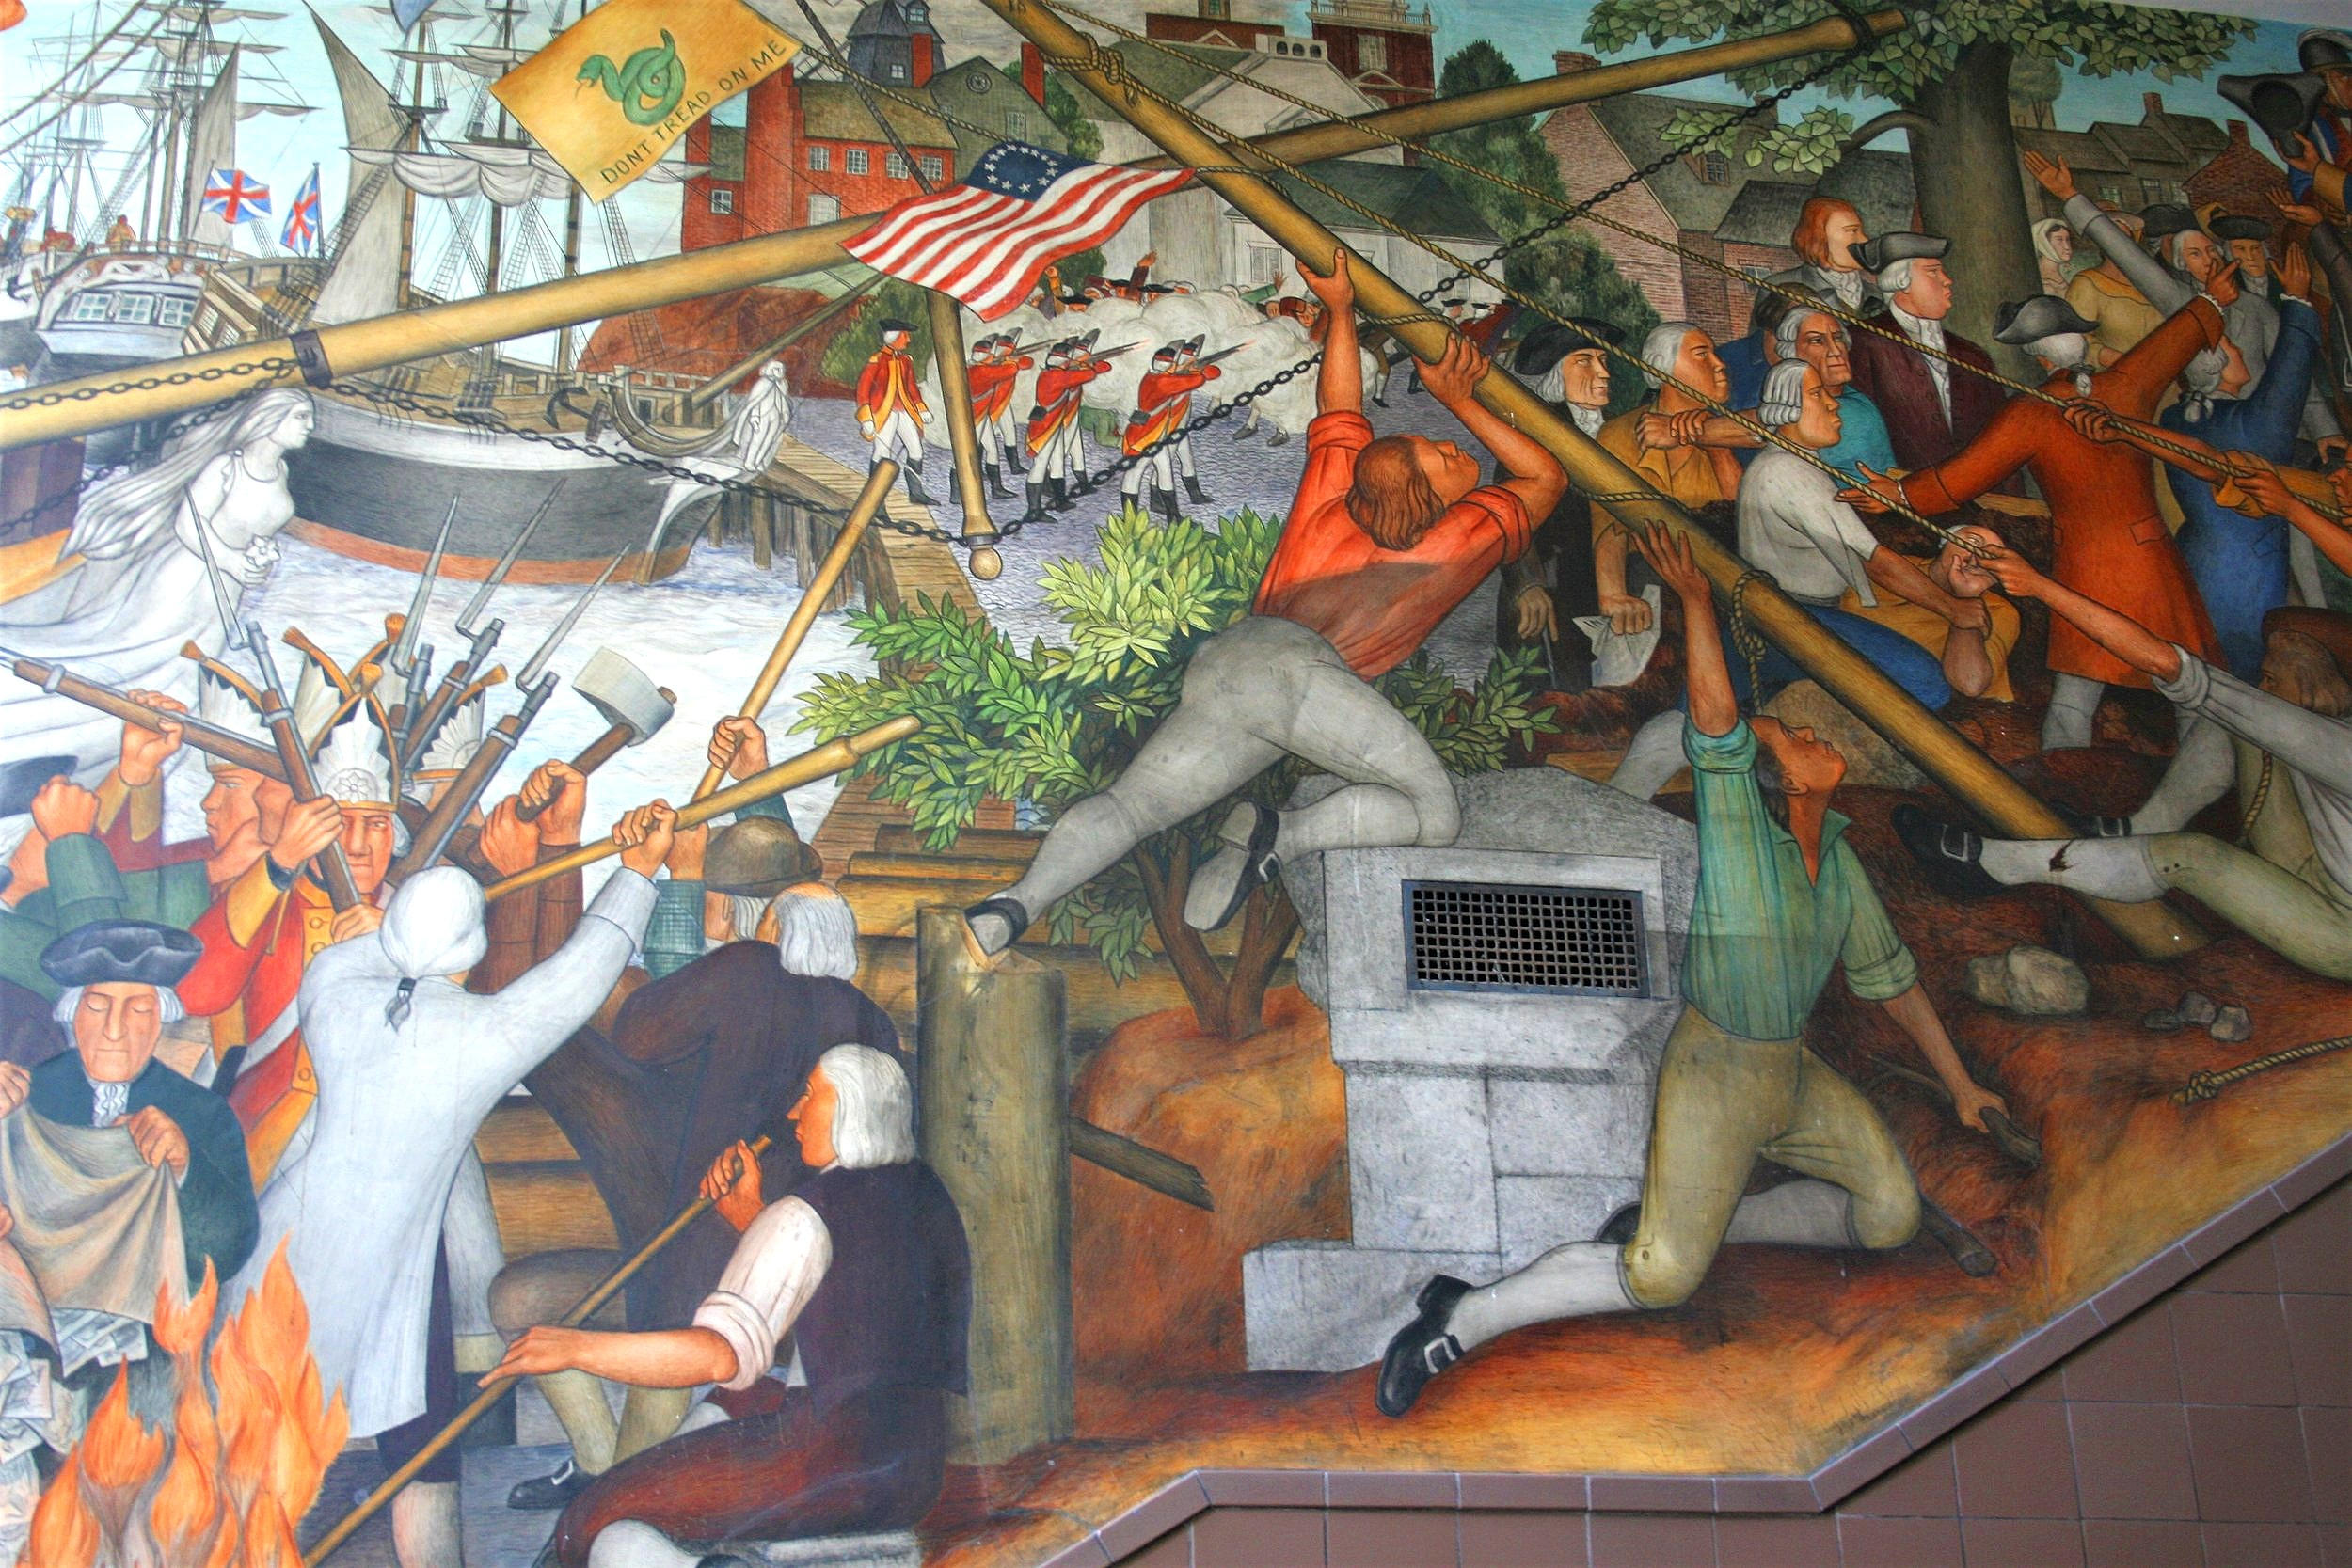 One of 13 panels in Victor Arnautoff's 'The Life of Washington' murals scheduled for destruction by the San Francisco Board of Education. Some students and their parents say the images are upsetting to young people who can't escape their past.